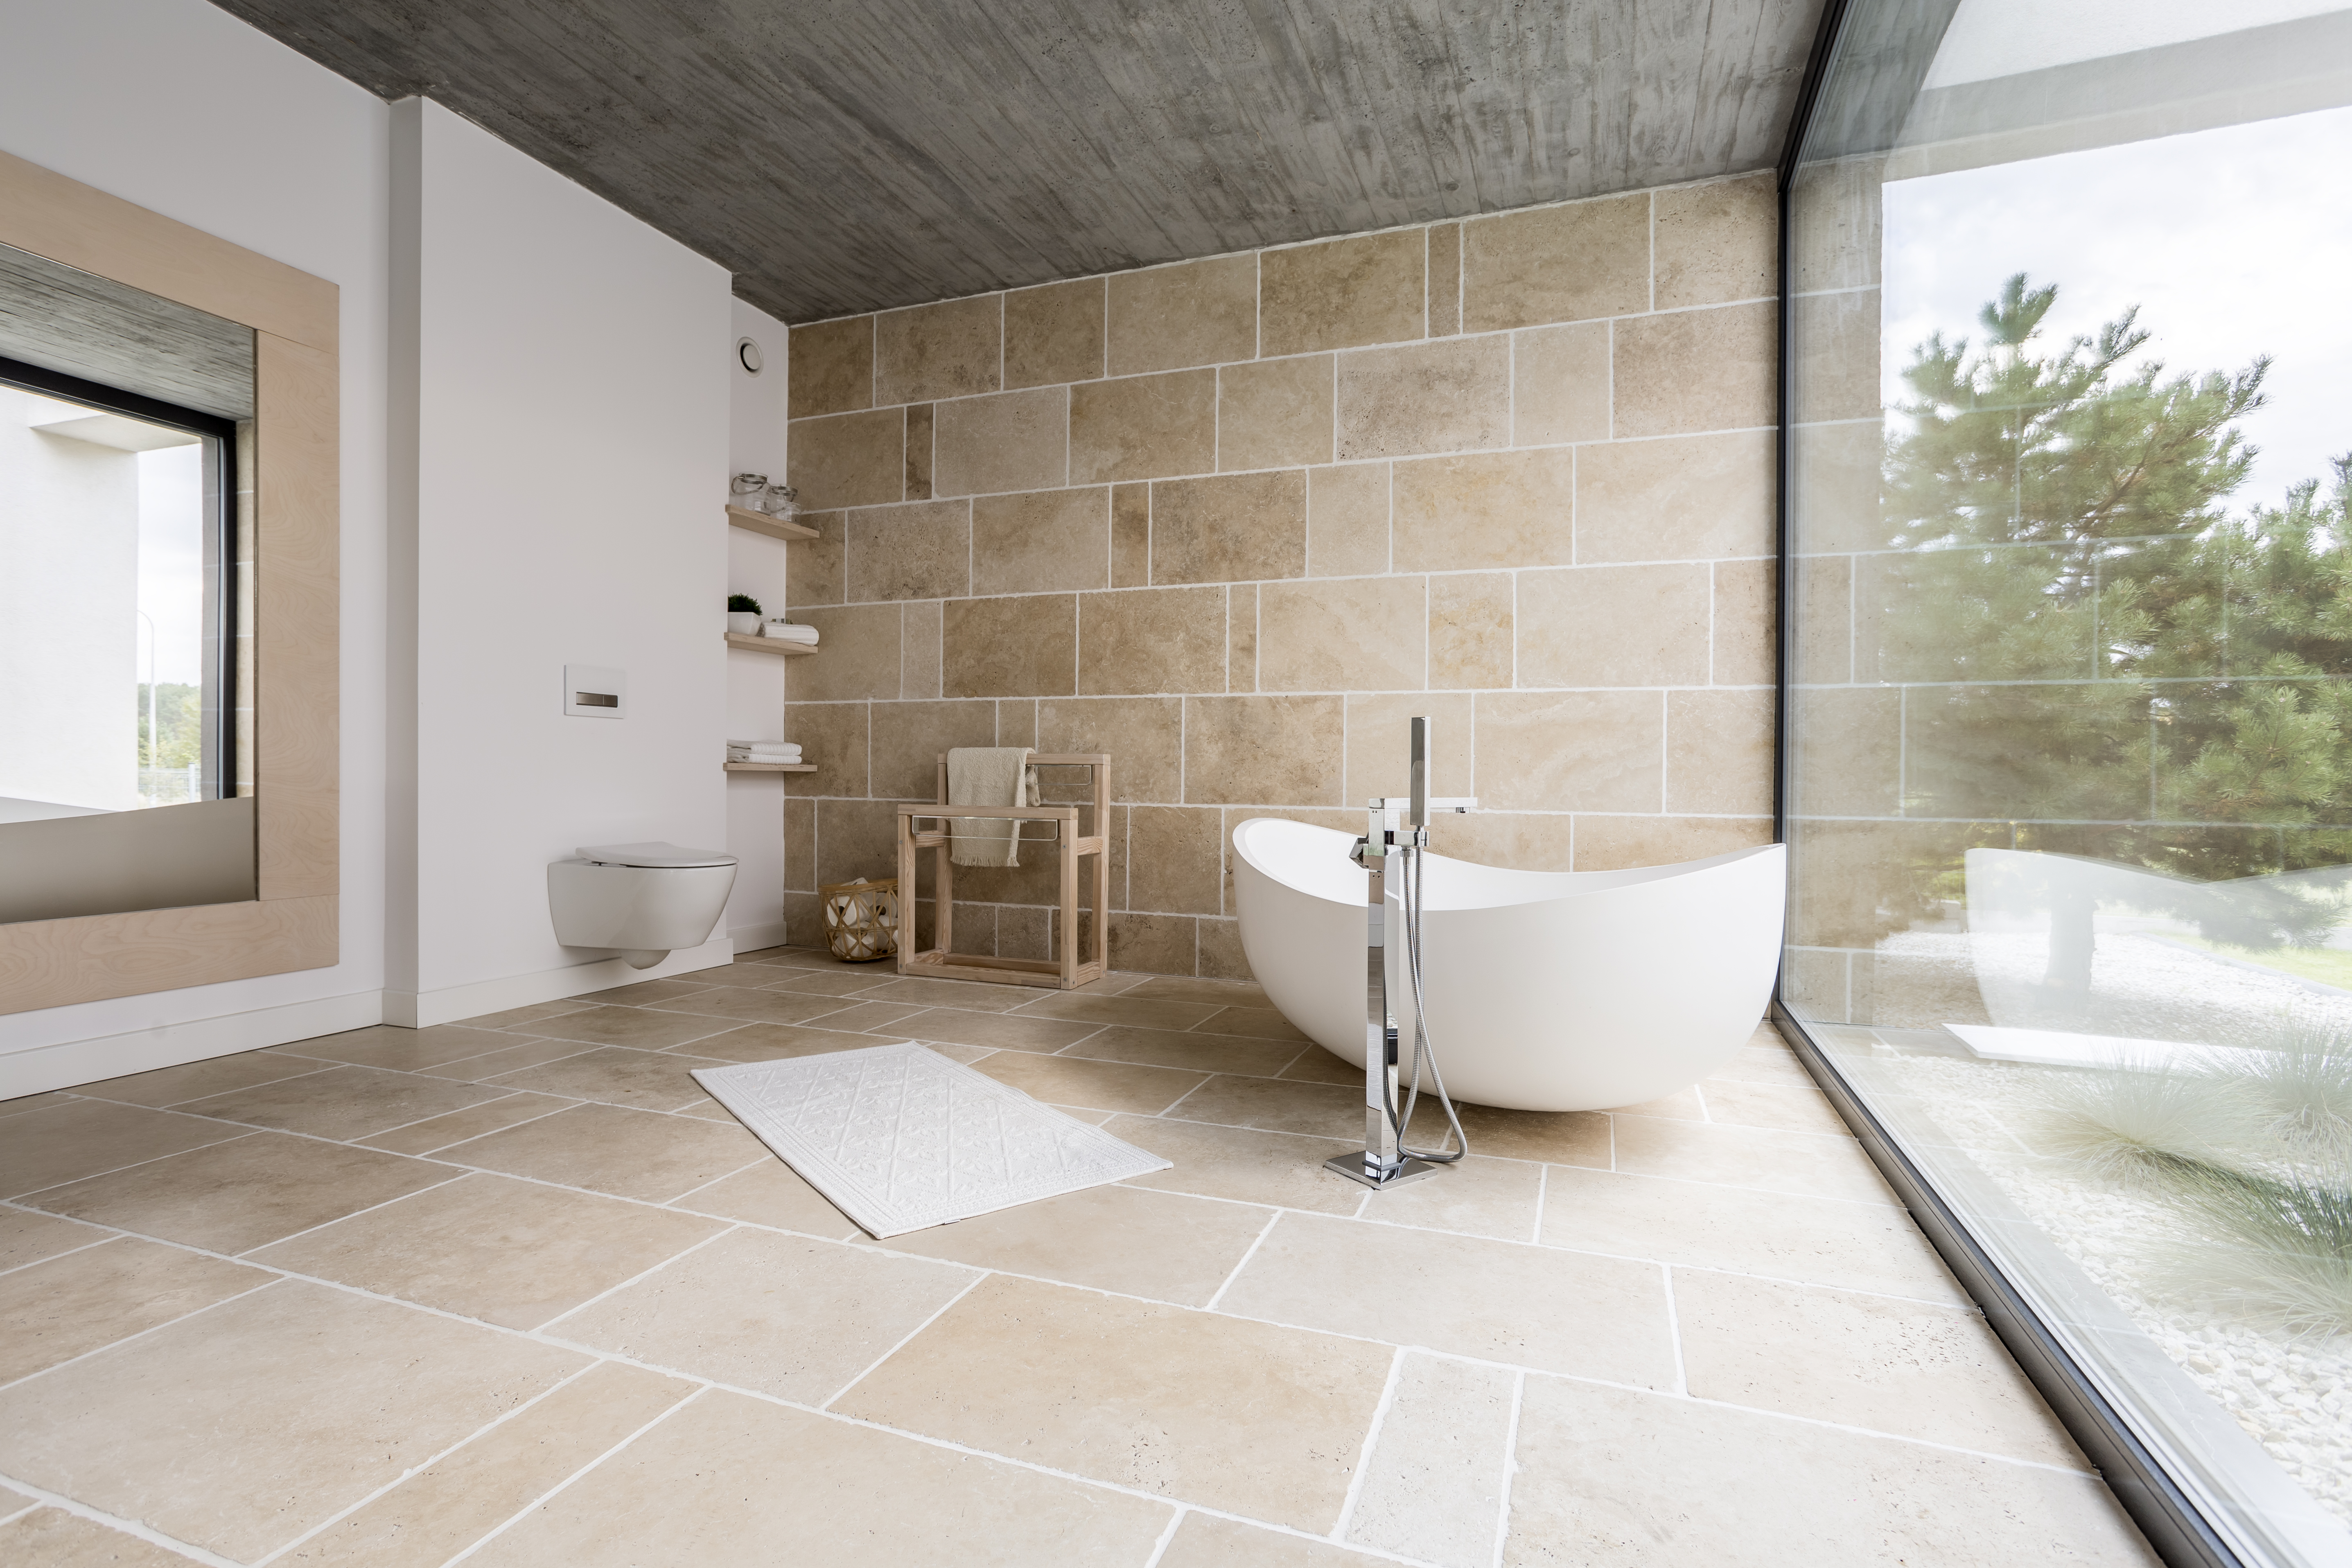 tiles ideas shower tile agreeable bathroom uk ravishing of modern wall designs